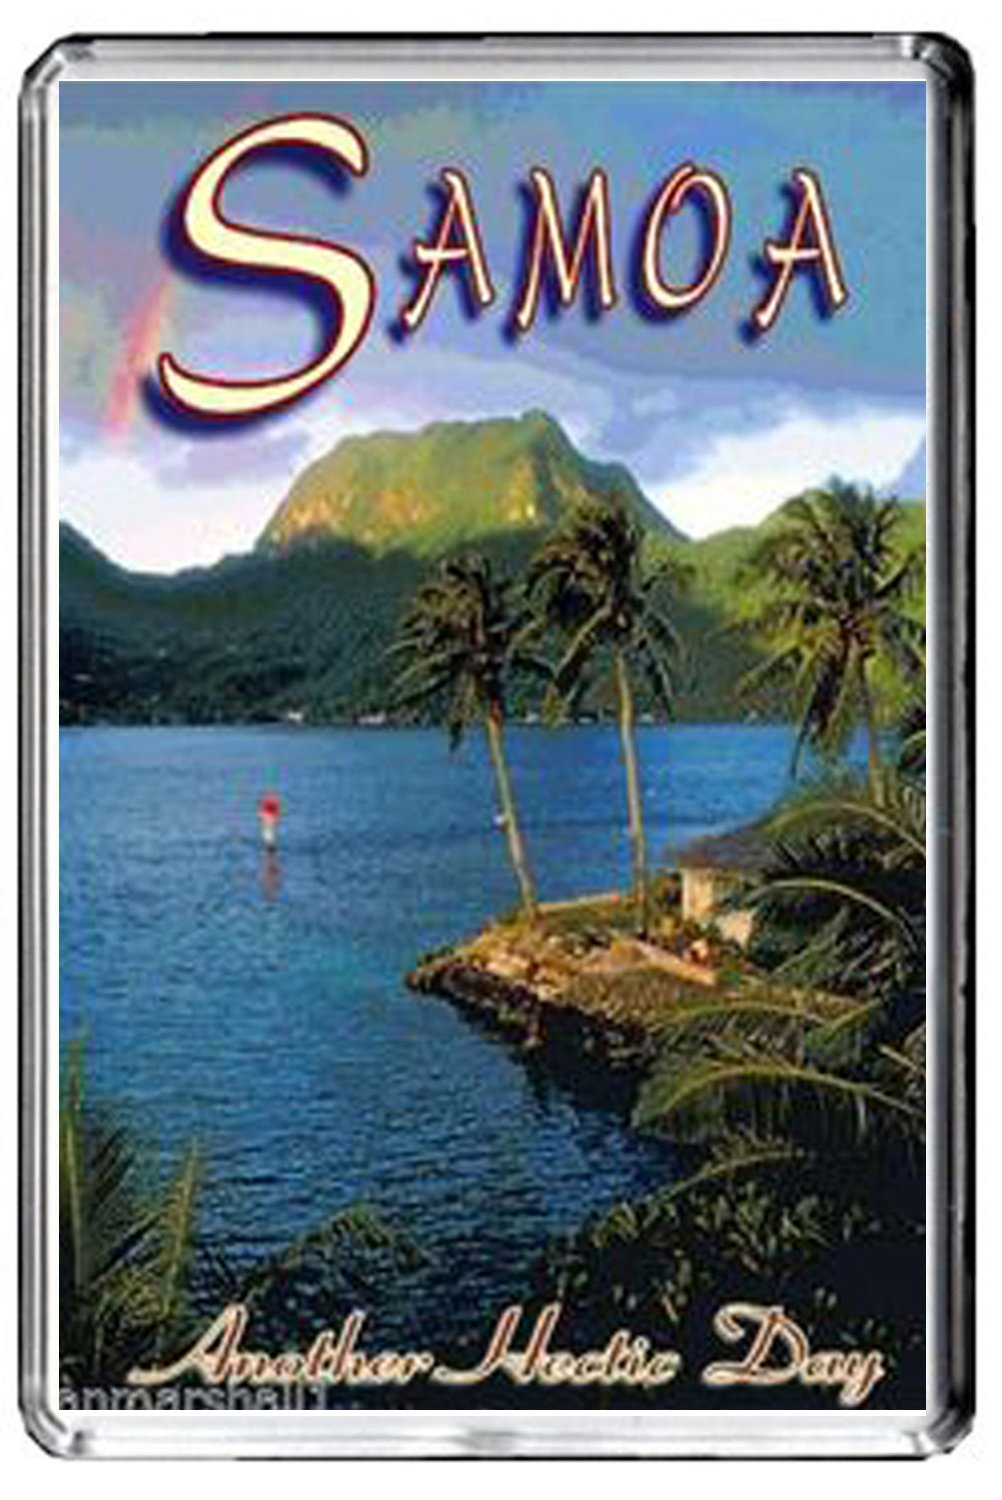 CFL F107 SAMOA FRIDGE MAGNET SAMOA VINTAGE TRAVEL PHOTO MAGNETICA CALAMITA FRIGO